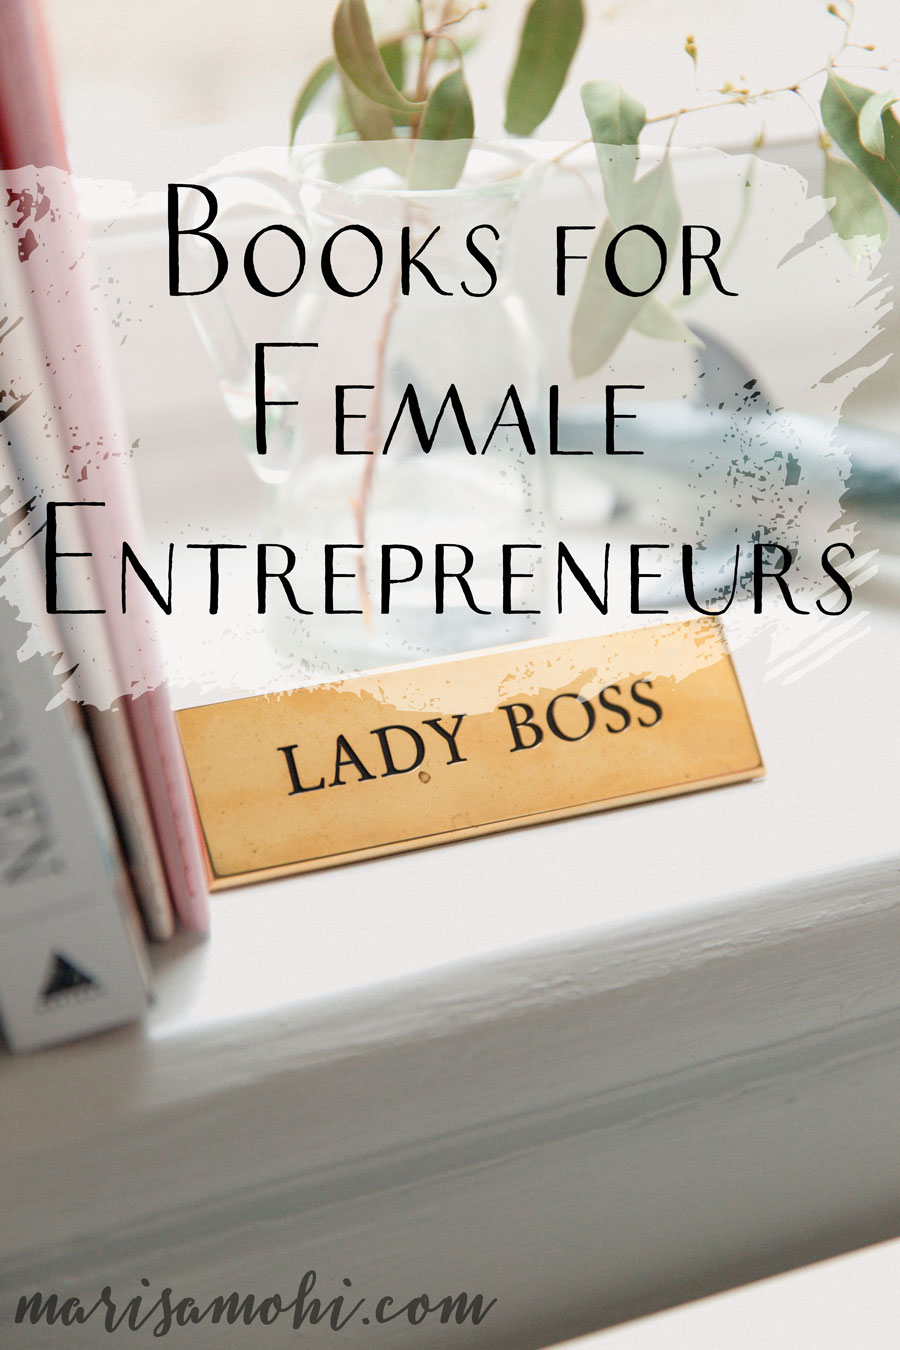 Books for Female Entrepreneurs | If you're looking for books to jumpstart your business journey, check out these books for female entrepreneurs!